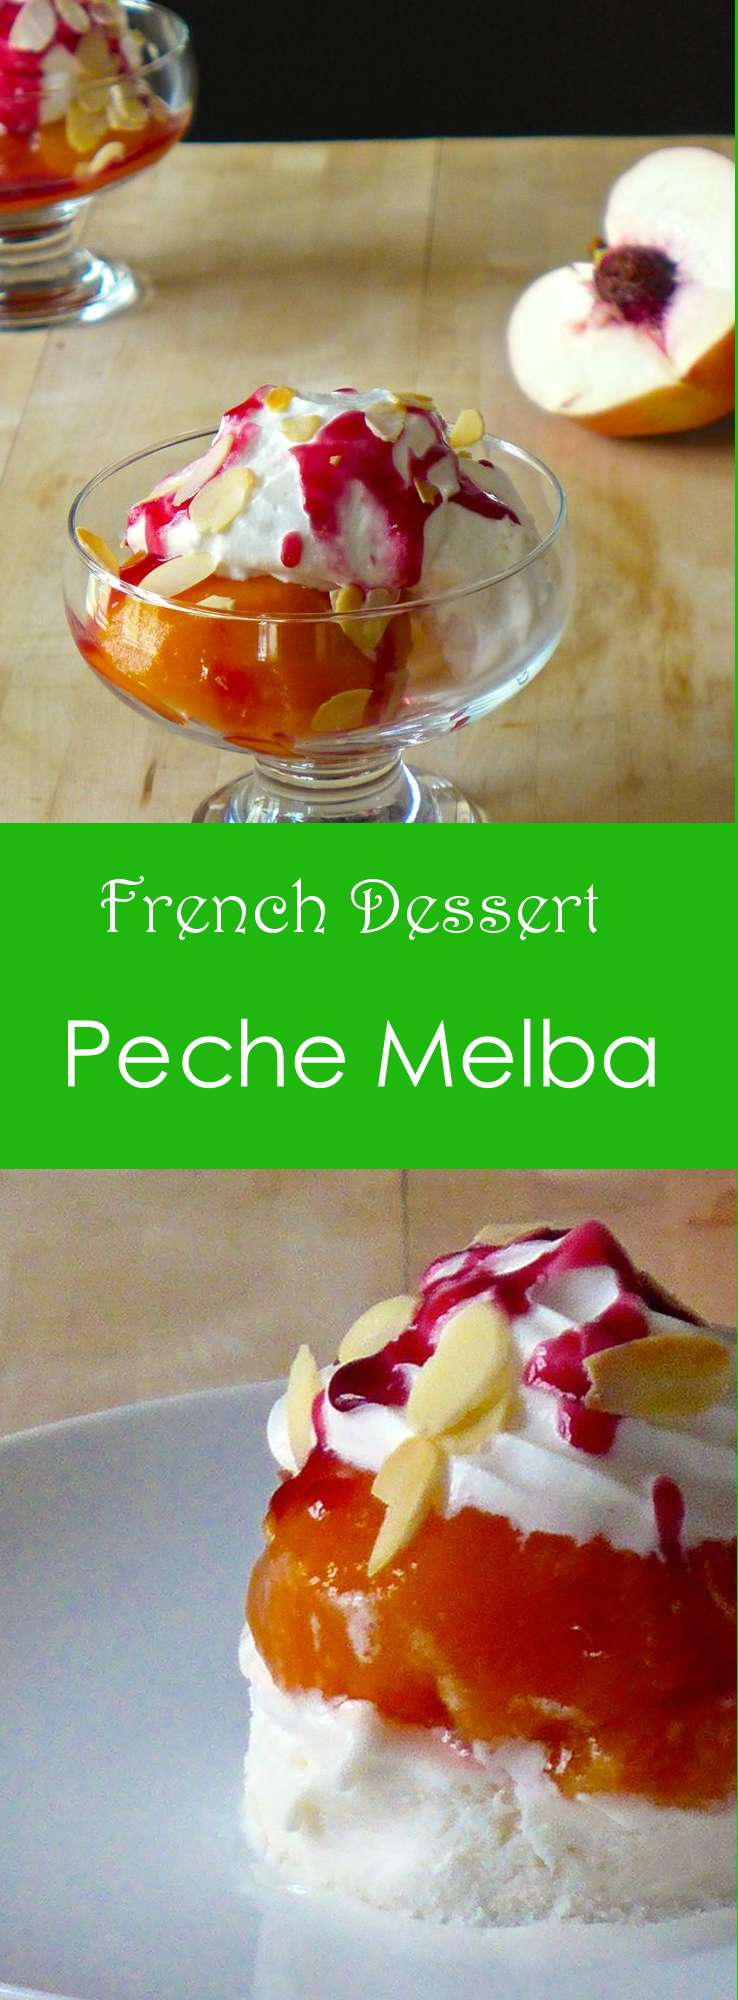 The first version of Peach Melba, a traditional dessert with peach was created by Chef Escoffier when he was the chef at the restaurant of the Savoy Hotel.